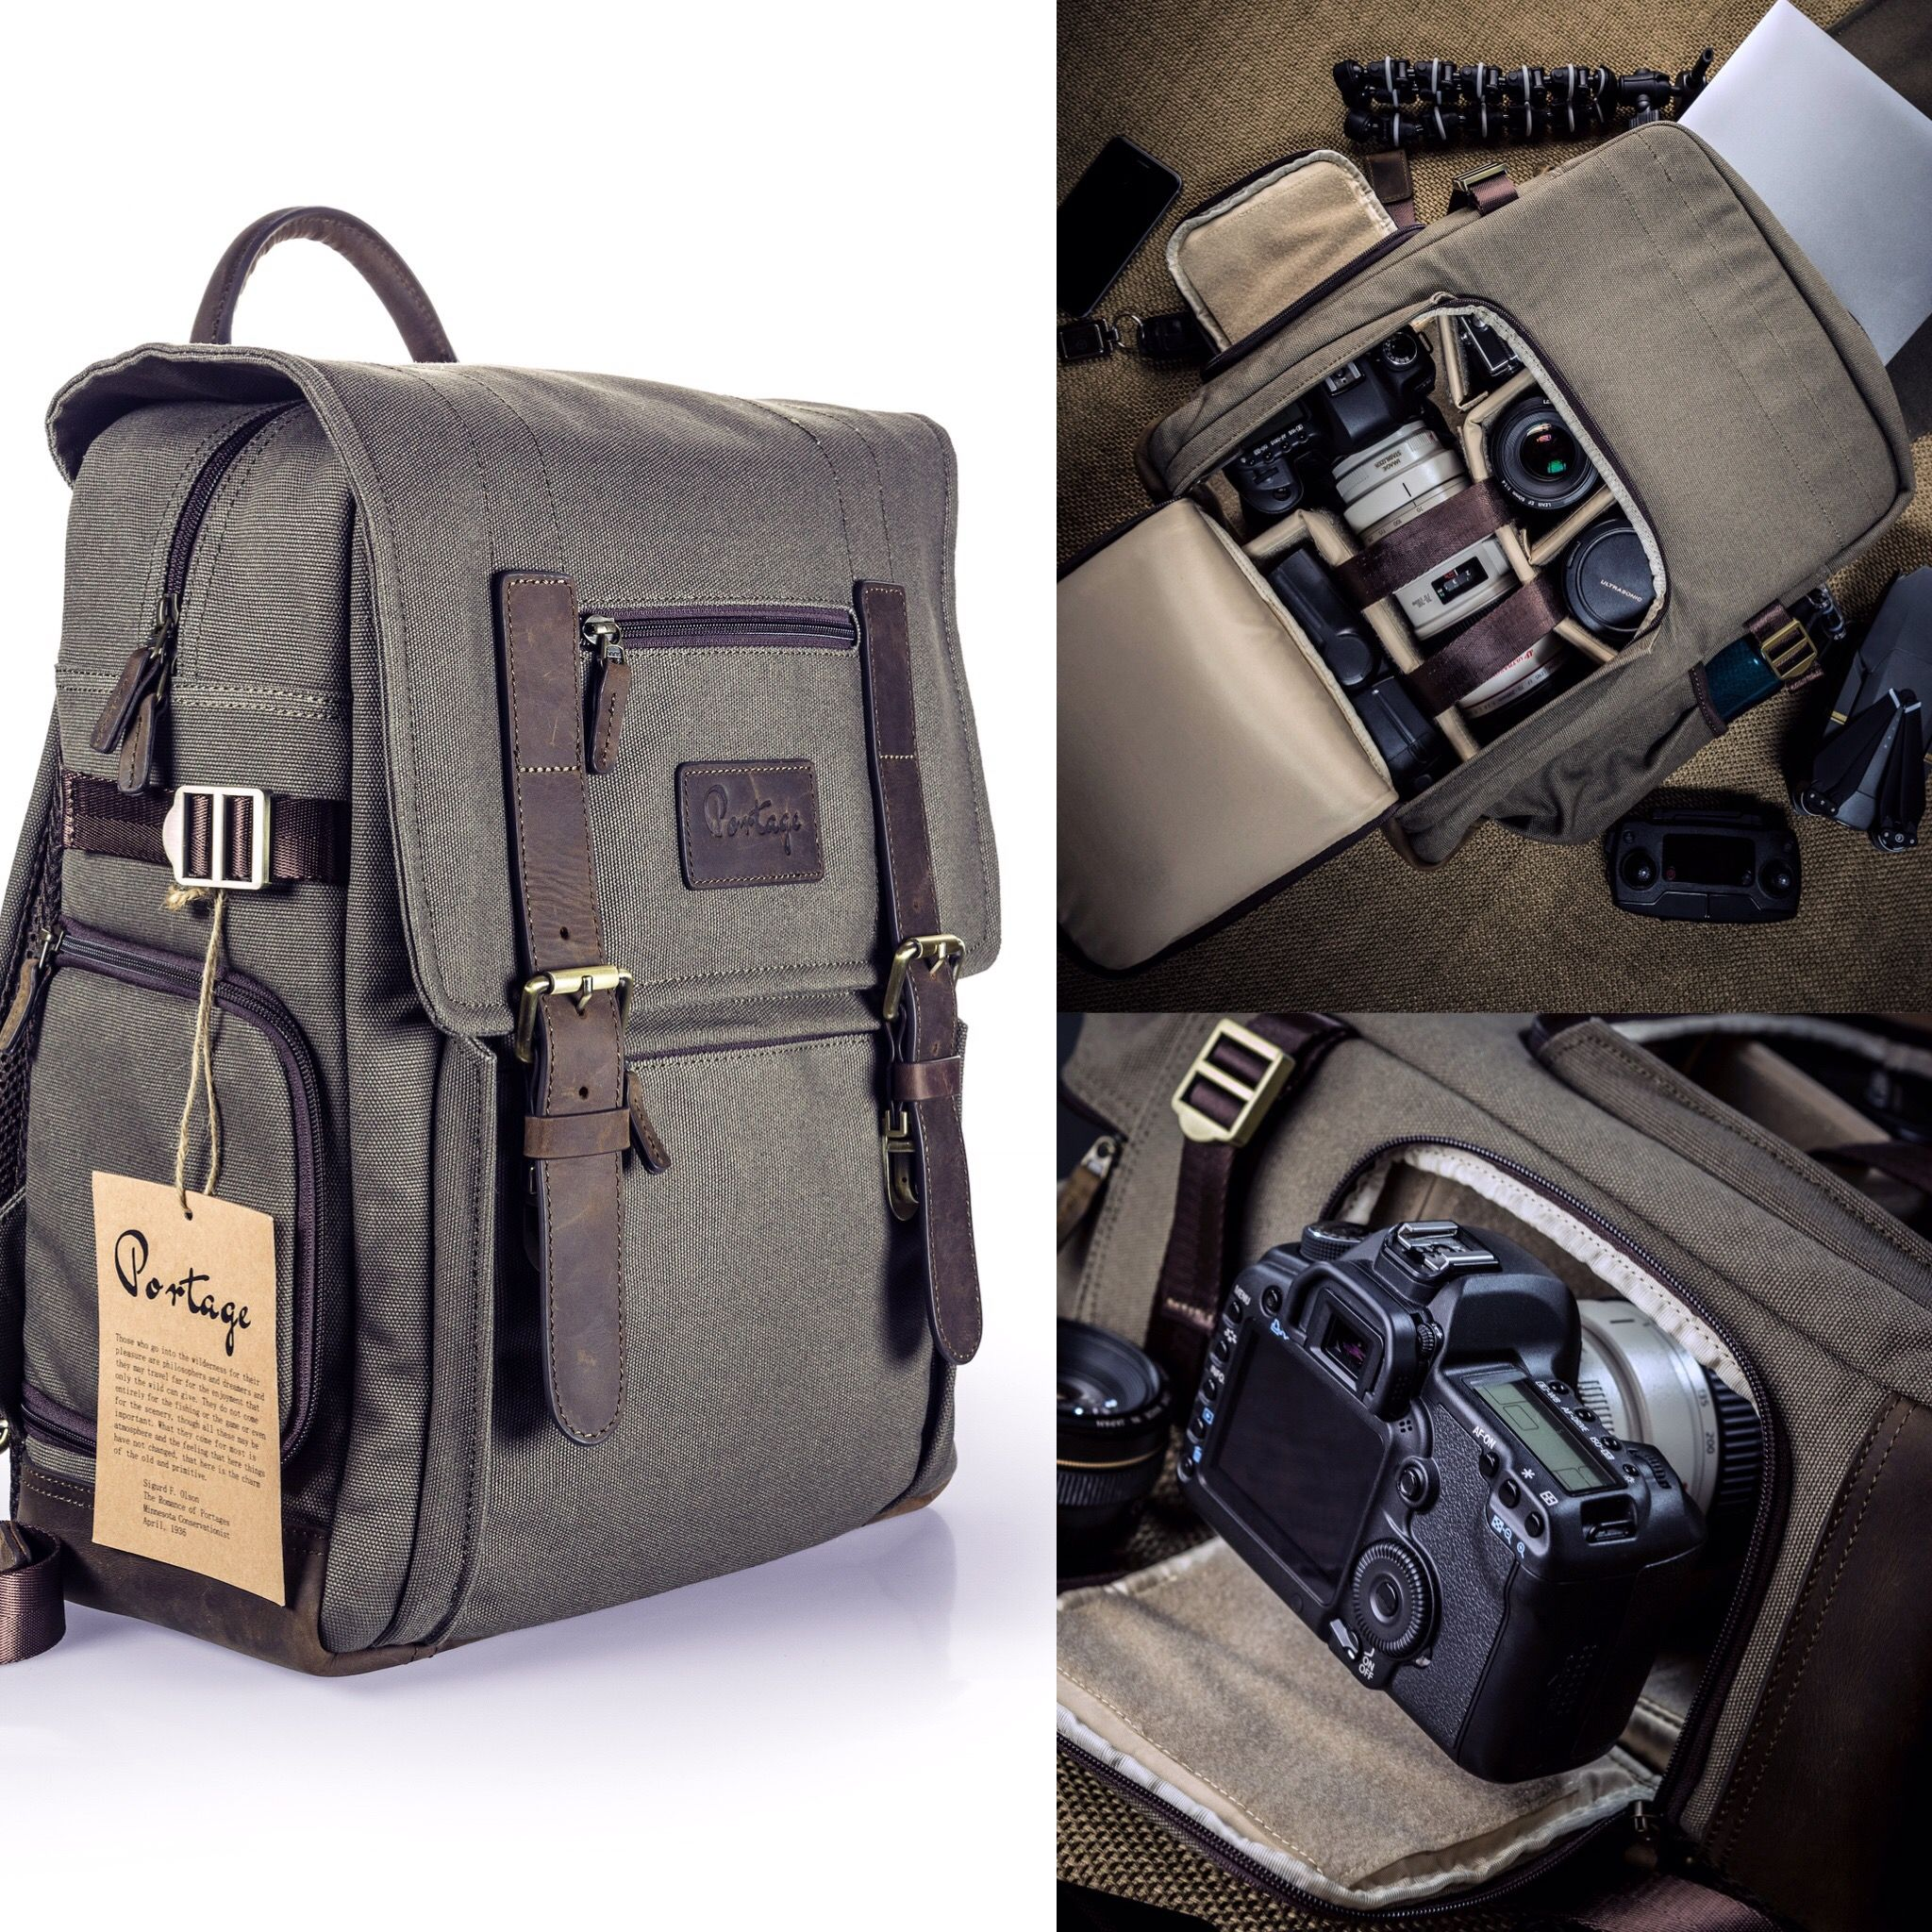 0b94165bff3d Kenora Camera Backpack (GEN3 with Side Access!) Carry your camera gear